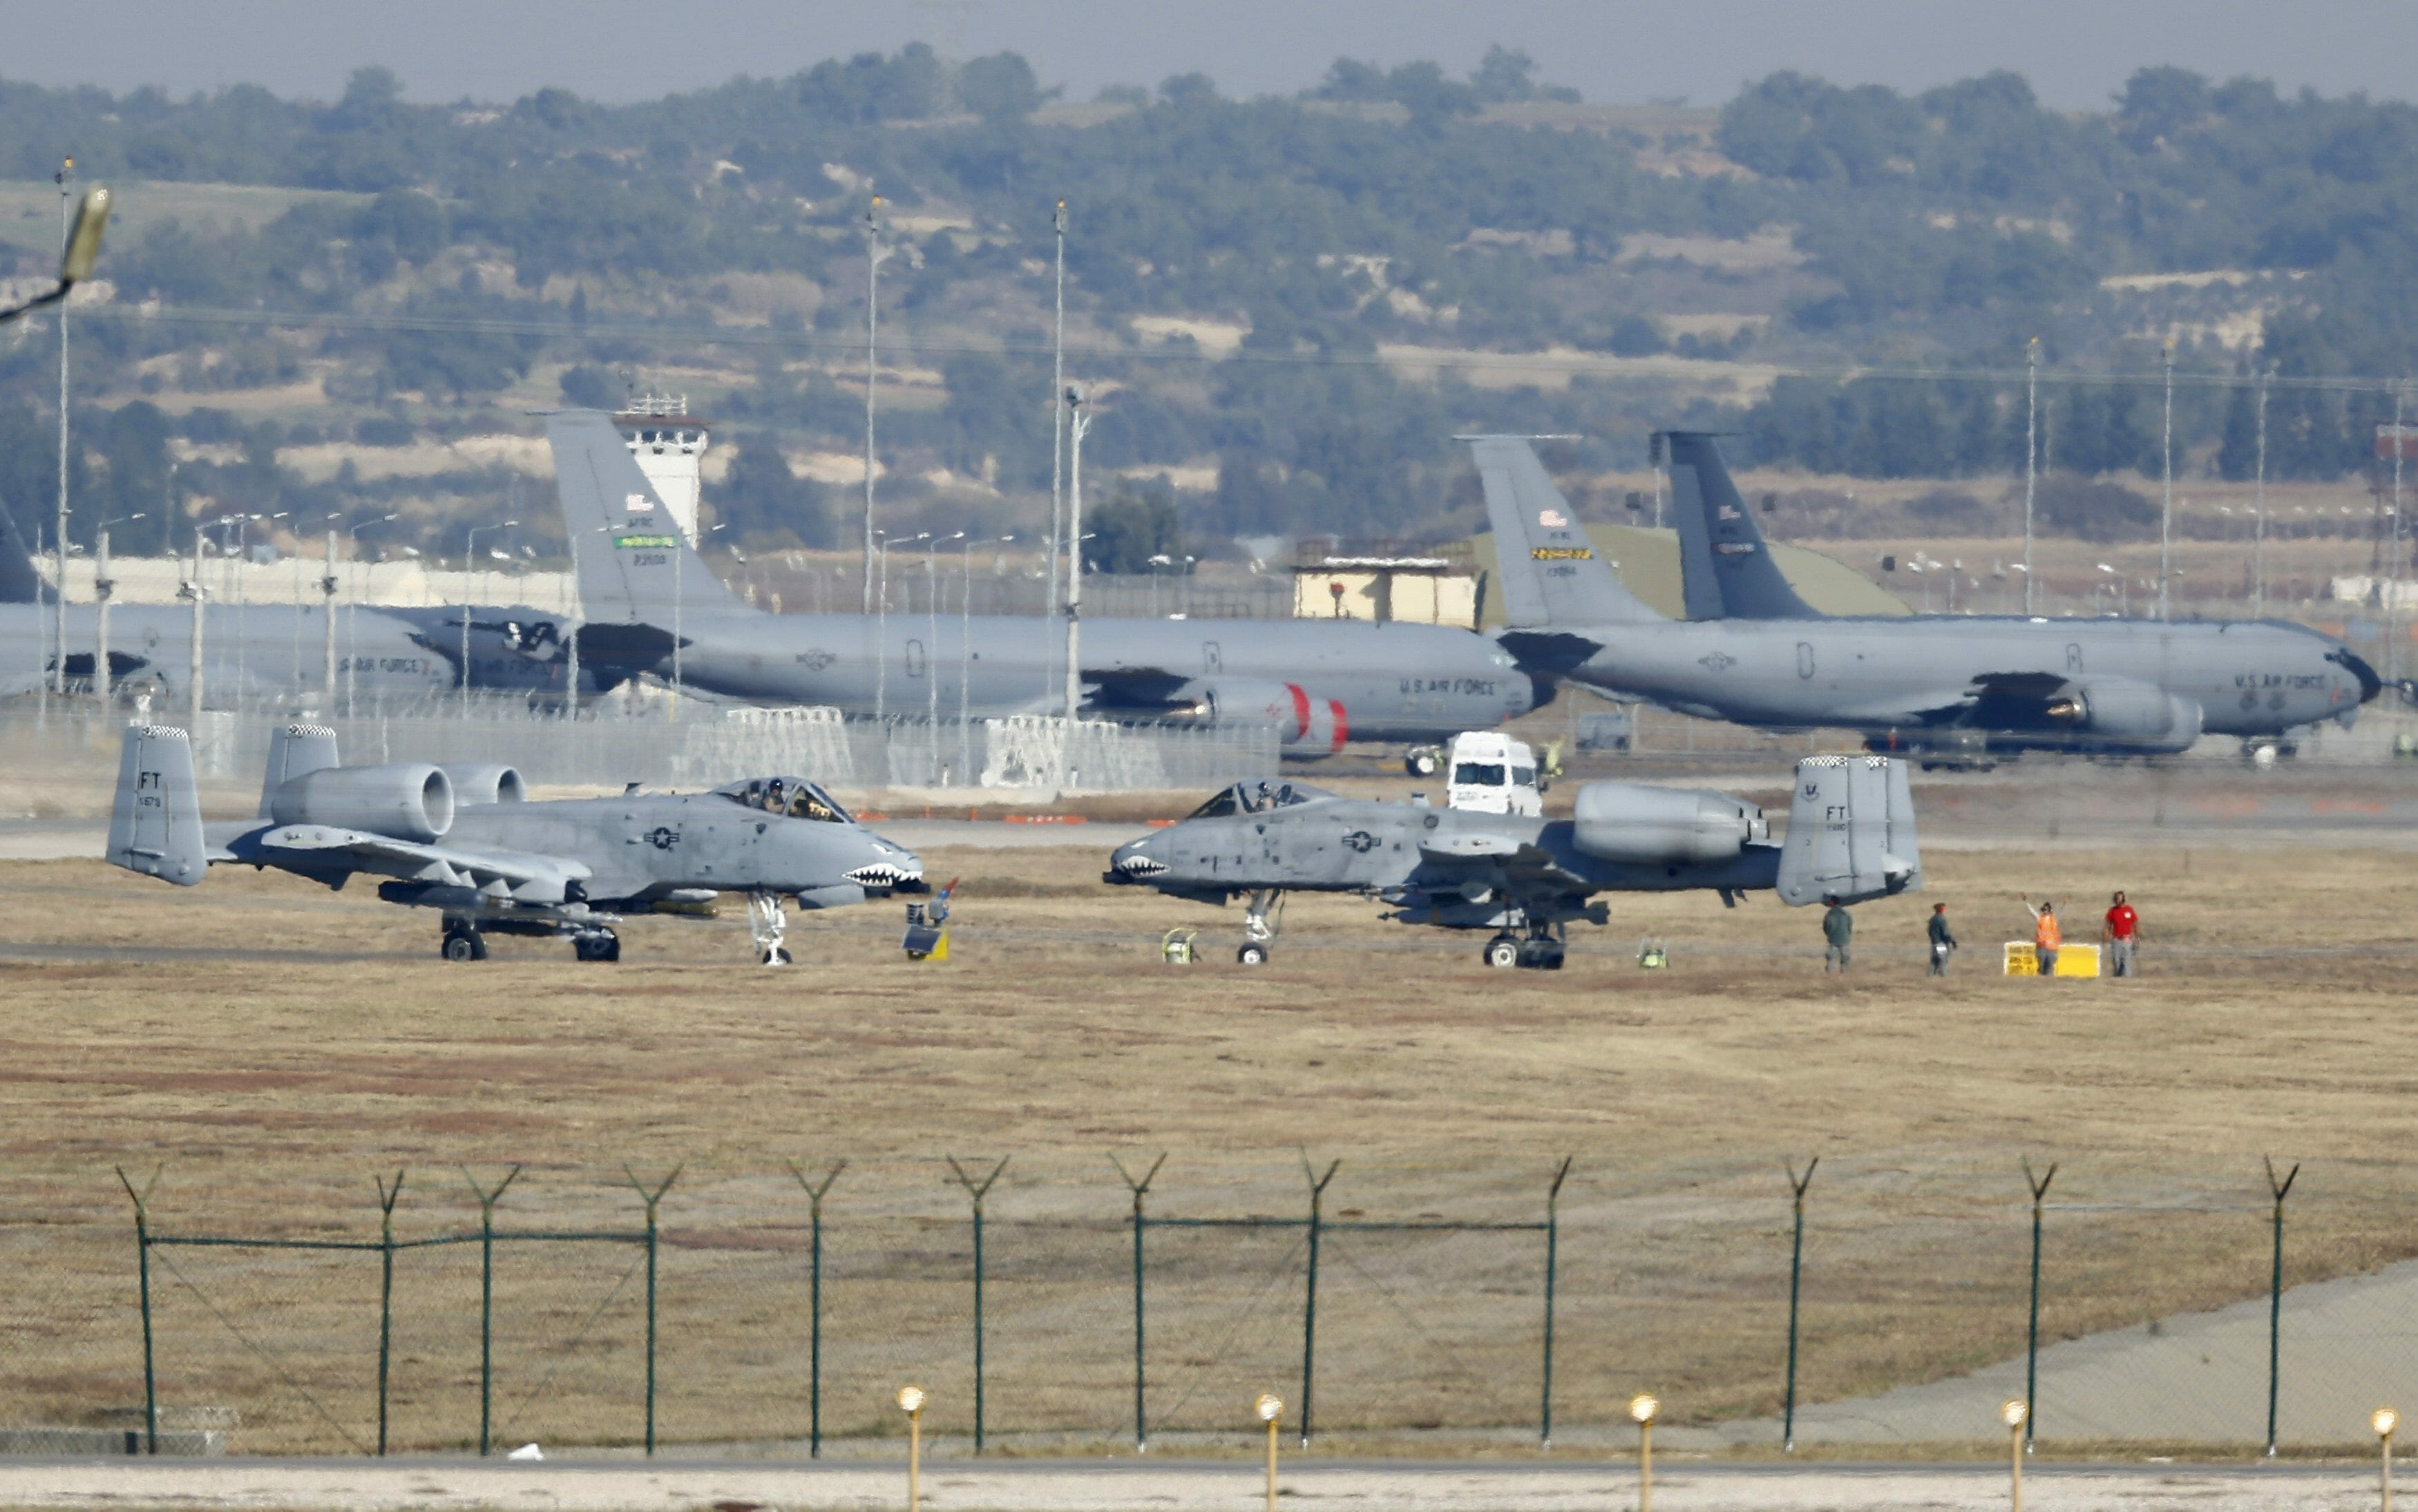 U.S. Air Force A-10 Thunderbolt II fighter jets (foreground) are pictured at Incirlik airbase in the southern city of Adana, Turkey, December 11, 2015. REUTERS/Umit Bektas